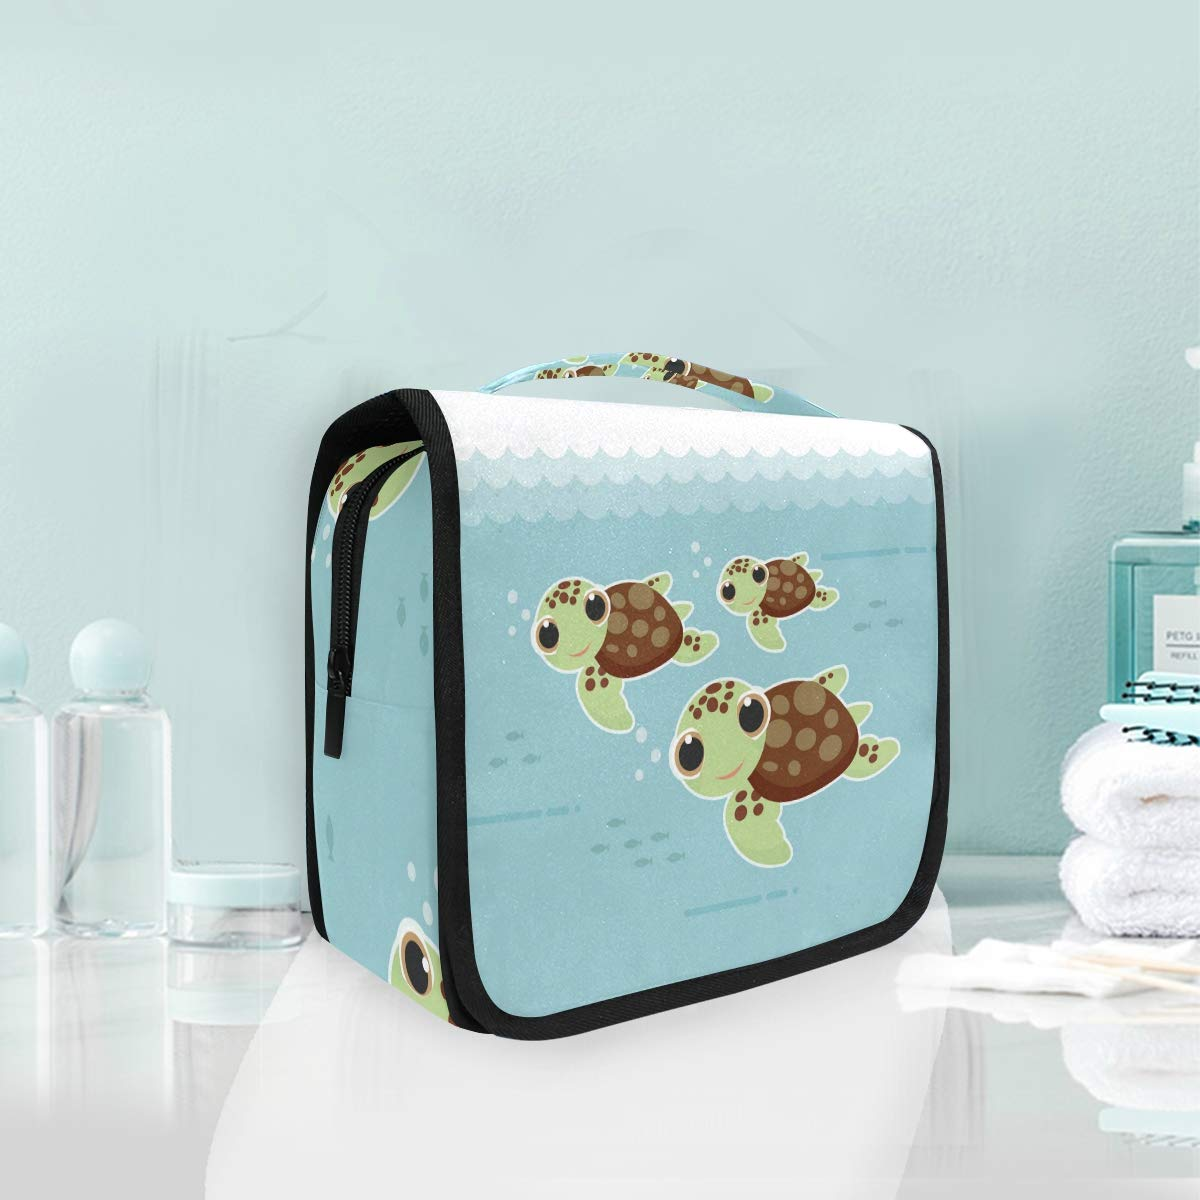 Hanging Toiletry Bag Cartoon Cute Baby Sea Turtles Portable Cosmetic Makeup Travel Organizer for Men & Women with Sturdy Hook